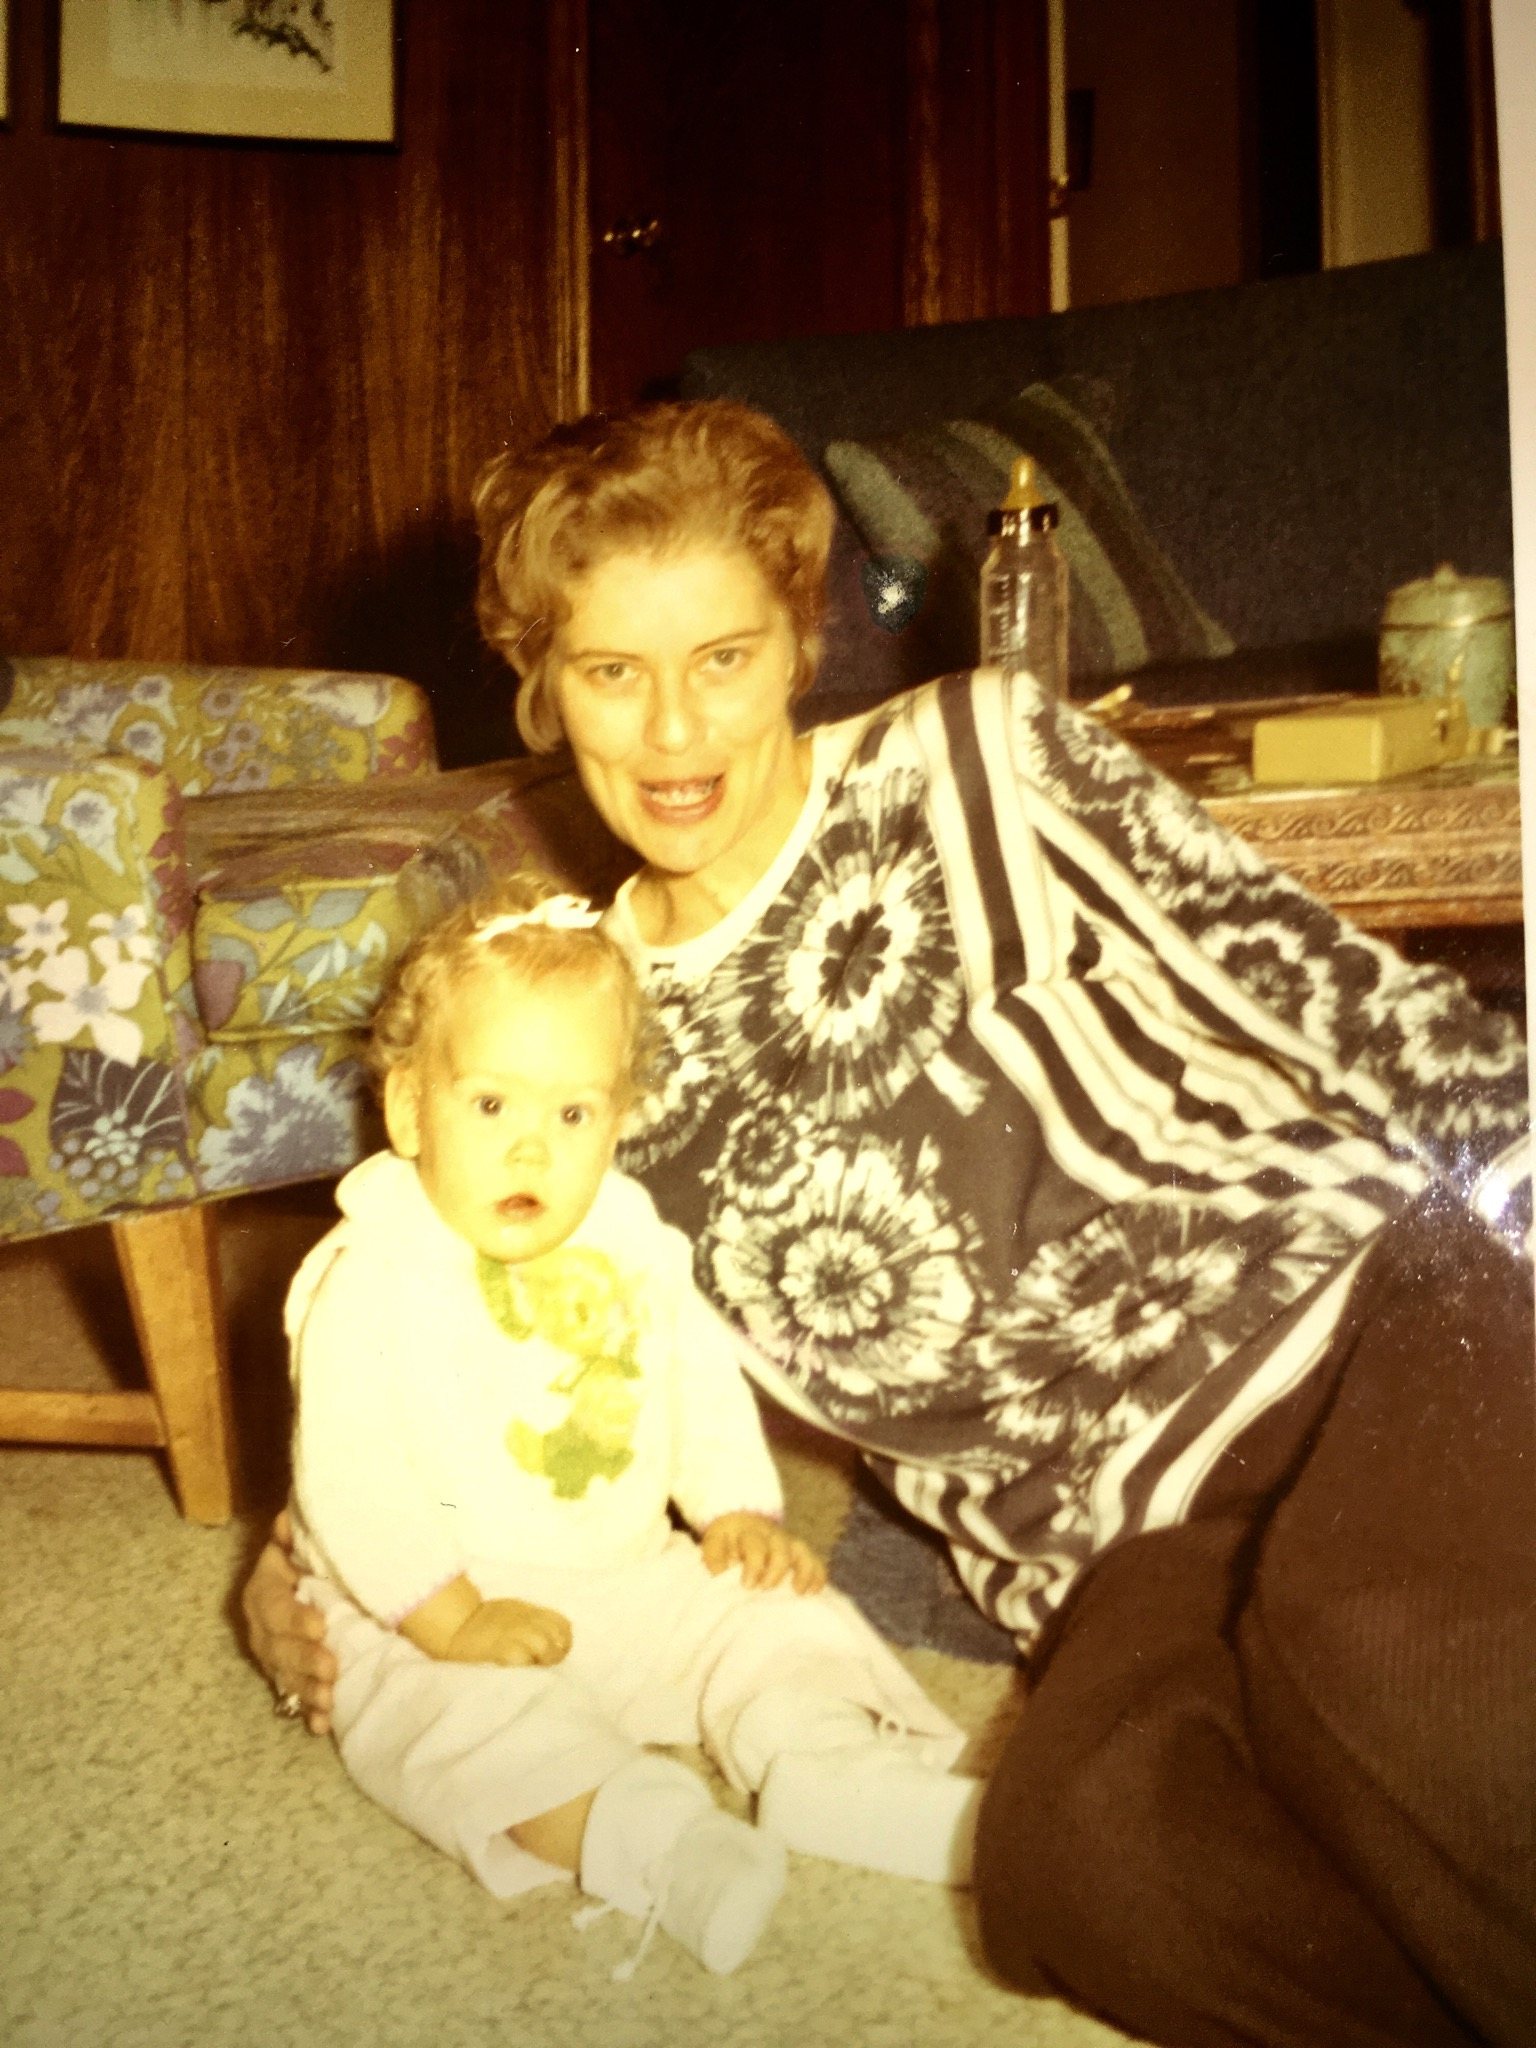 RIP my amazing Aunt Jackie!so fun&kind hearted...could always make us laugh-will never forget her laugh-Her two awesome children are such great reflections-We will always luv u Aunt J!!(Aunt J&me in pic)